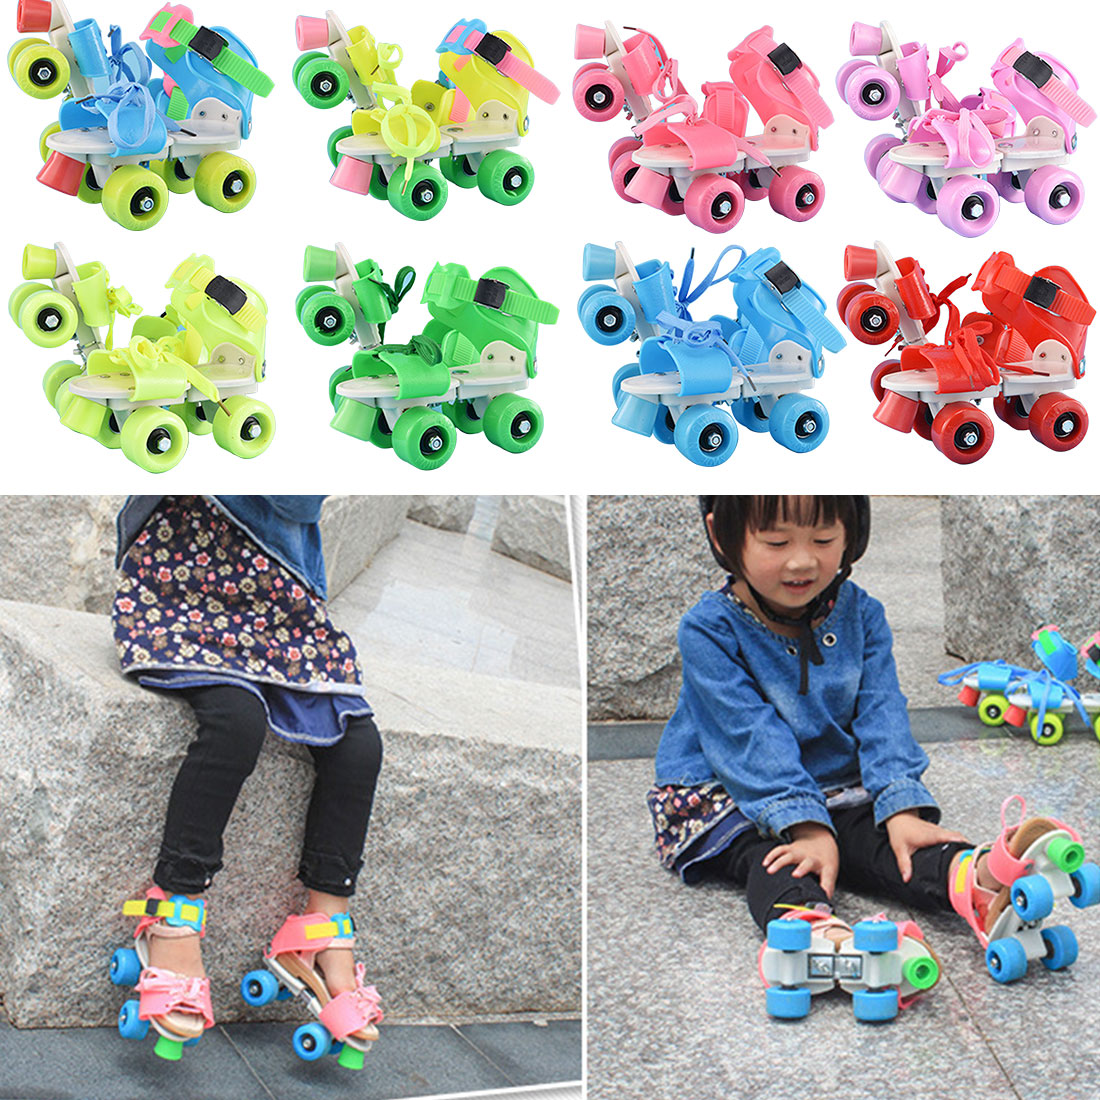 Brand New Children Roller Skates Double Row 4 Wheels Adjustable Size Skating Shoes Sliding Slalom Inline